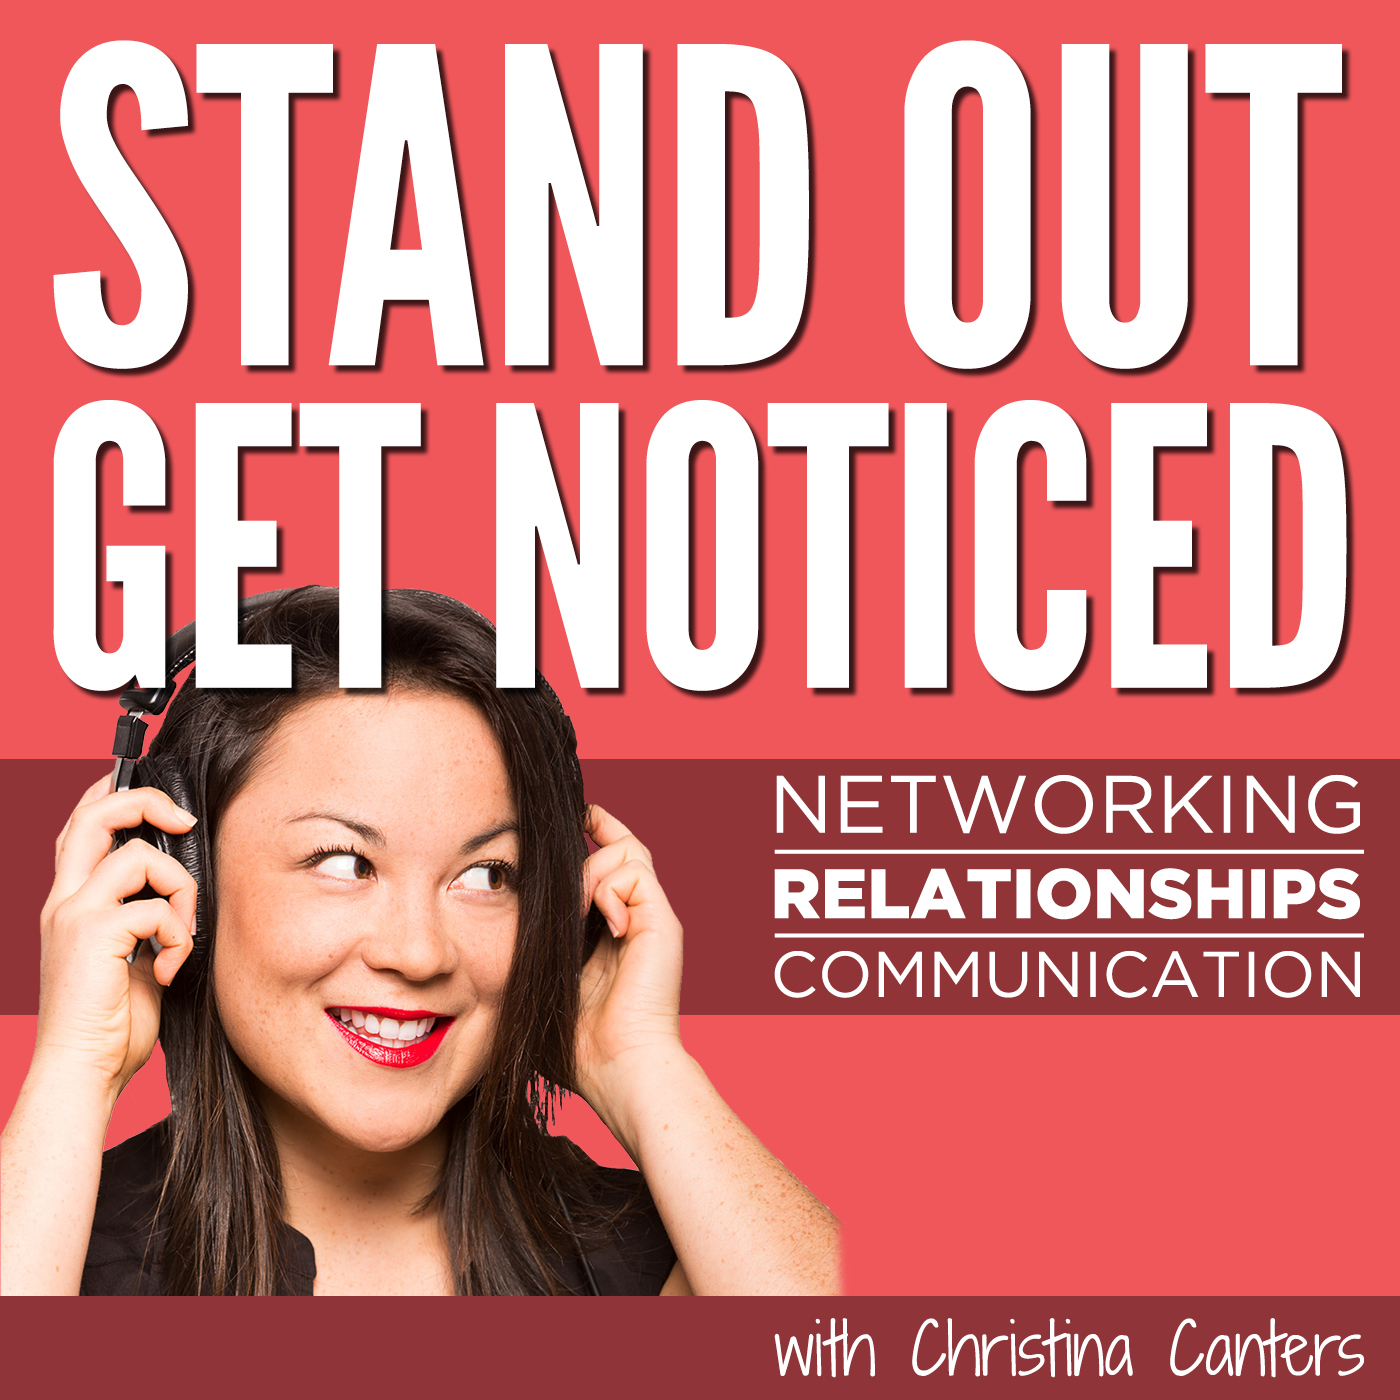 Stand Out Get Noticed with Christina Canters of The C Method